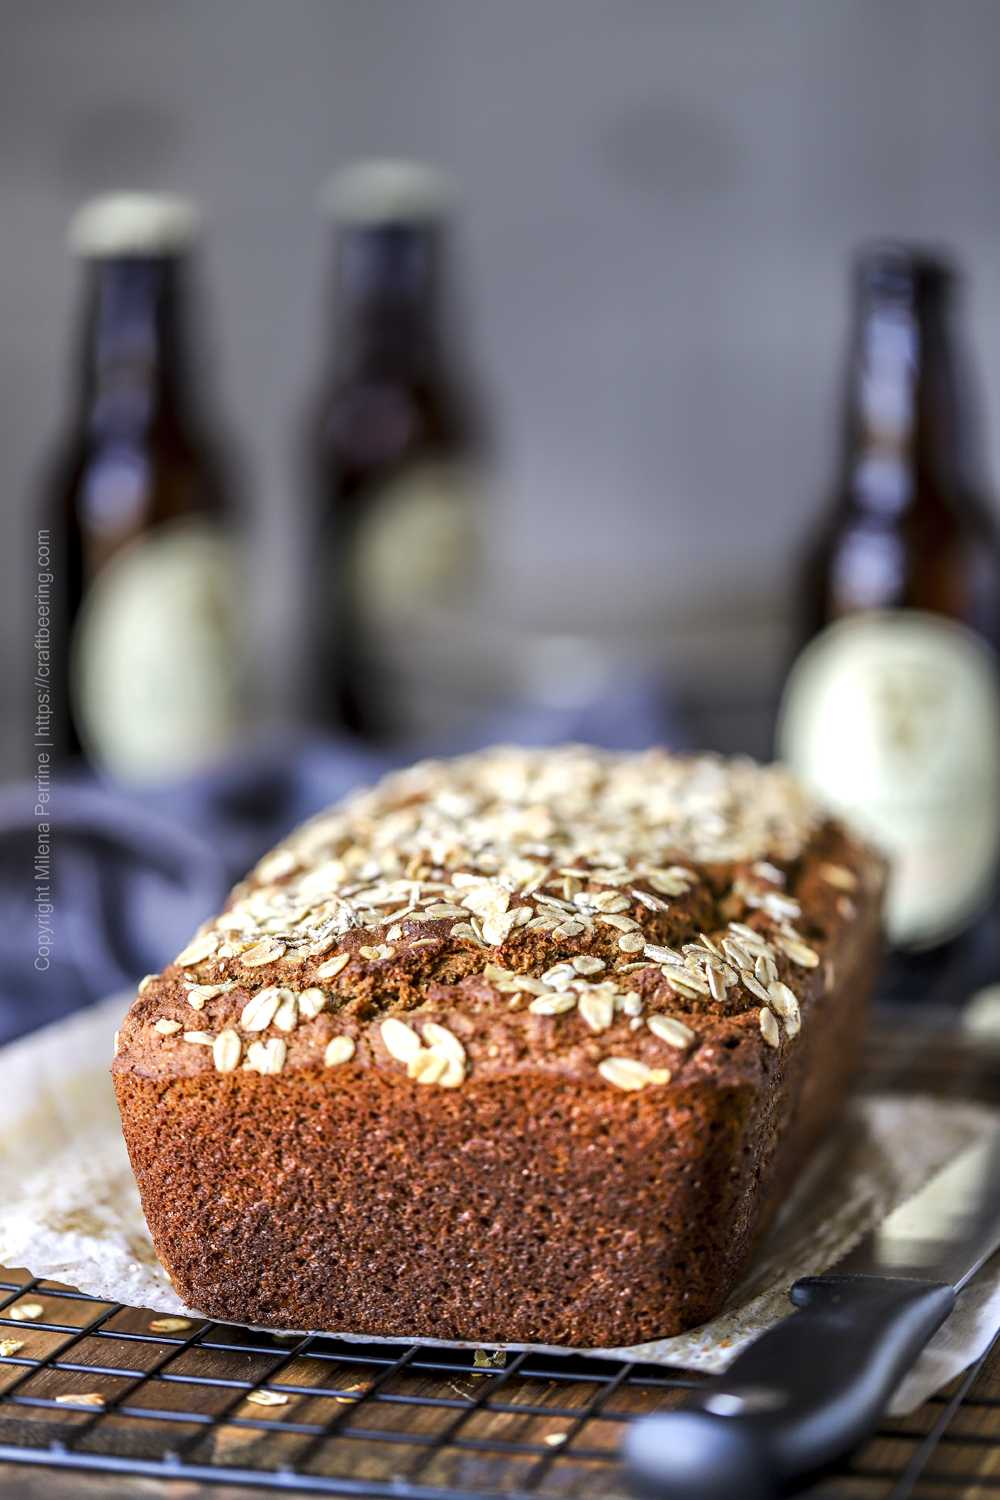 Loaf of Irish brown bread with stoneground whole wheat flour and oats.